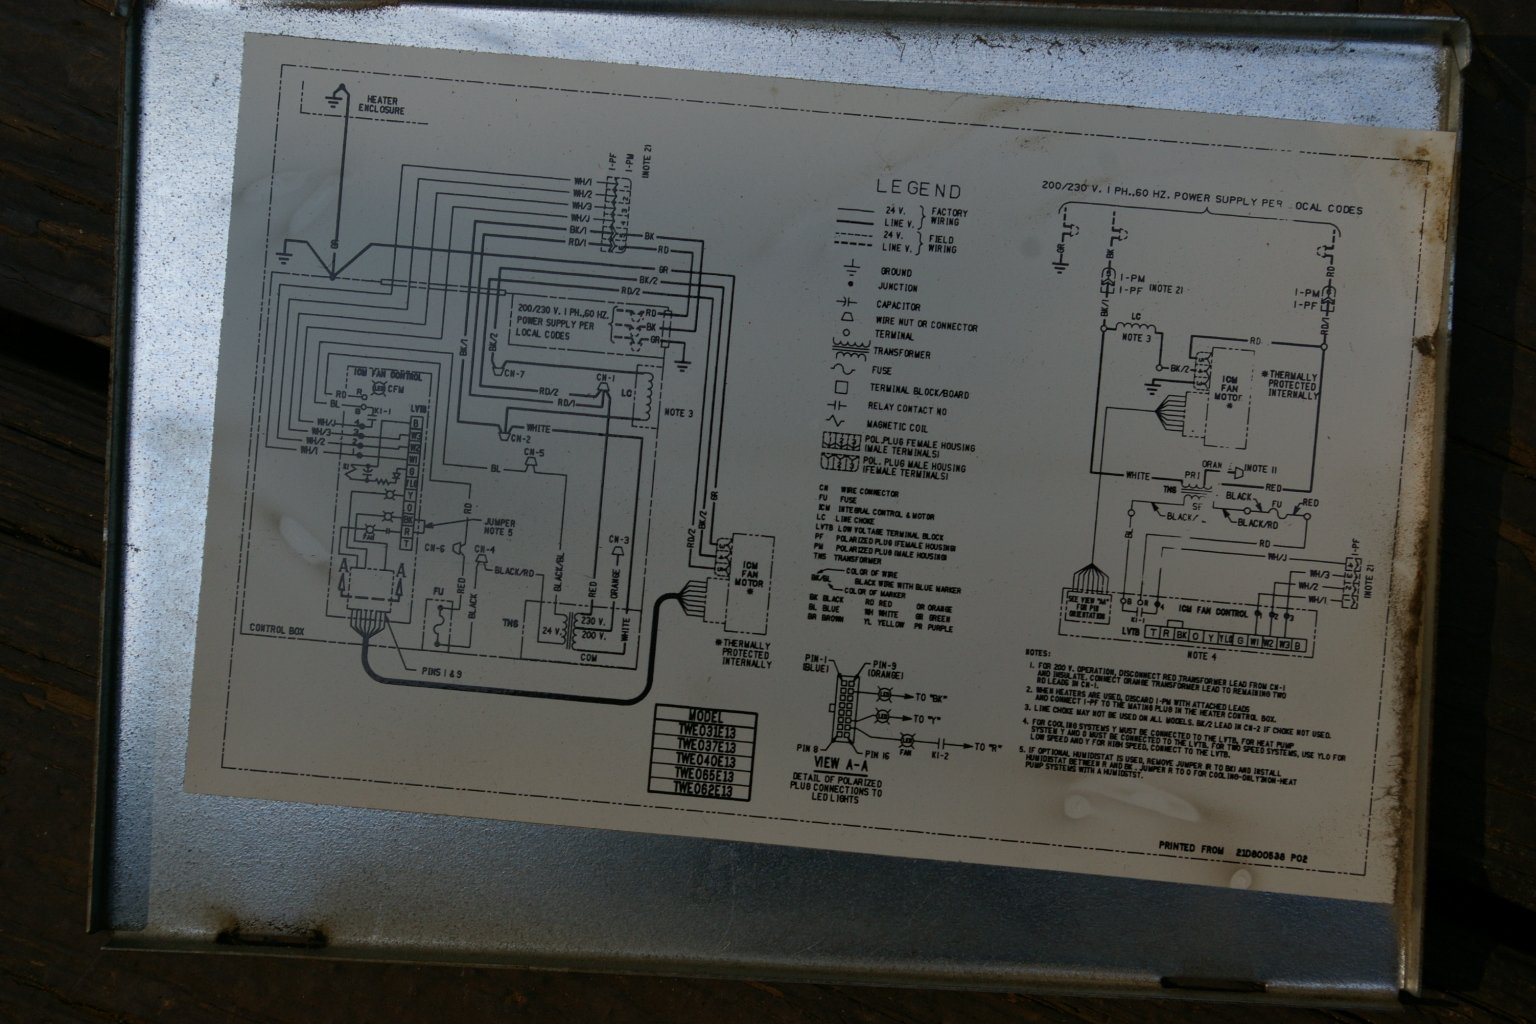 2013 08 29_214357_imgp2552 trane wiring diagram efcaviation com Trane Thermostat Wiring at edmiracle.co